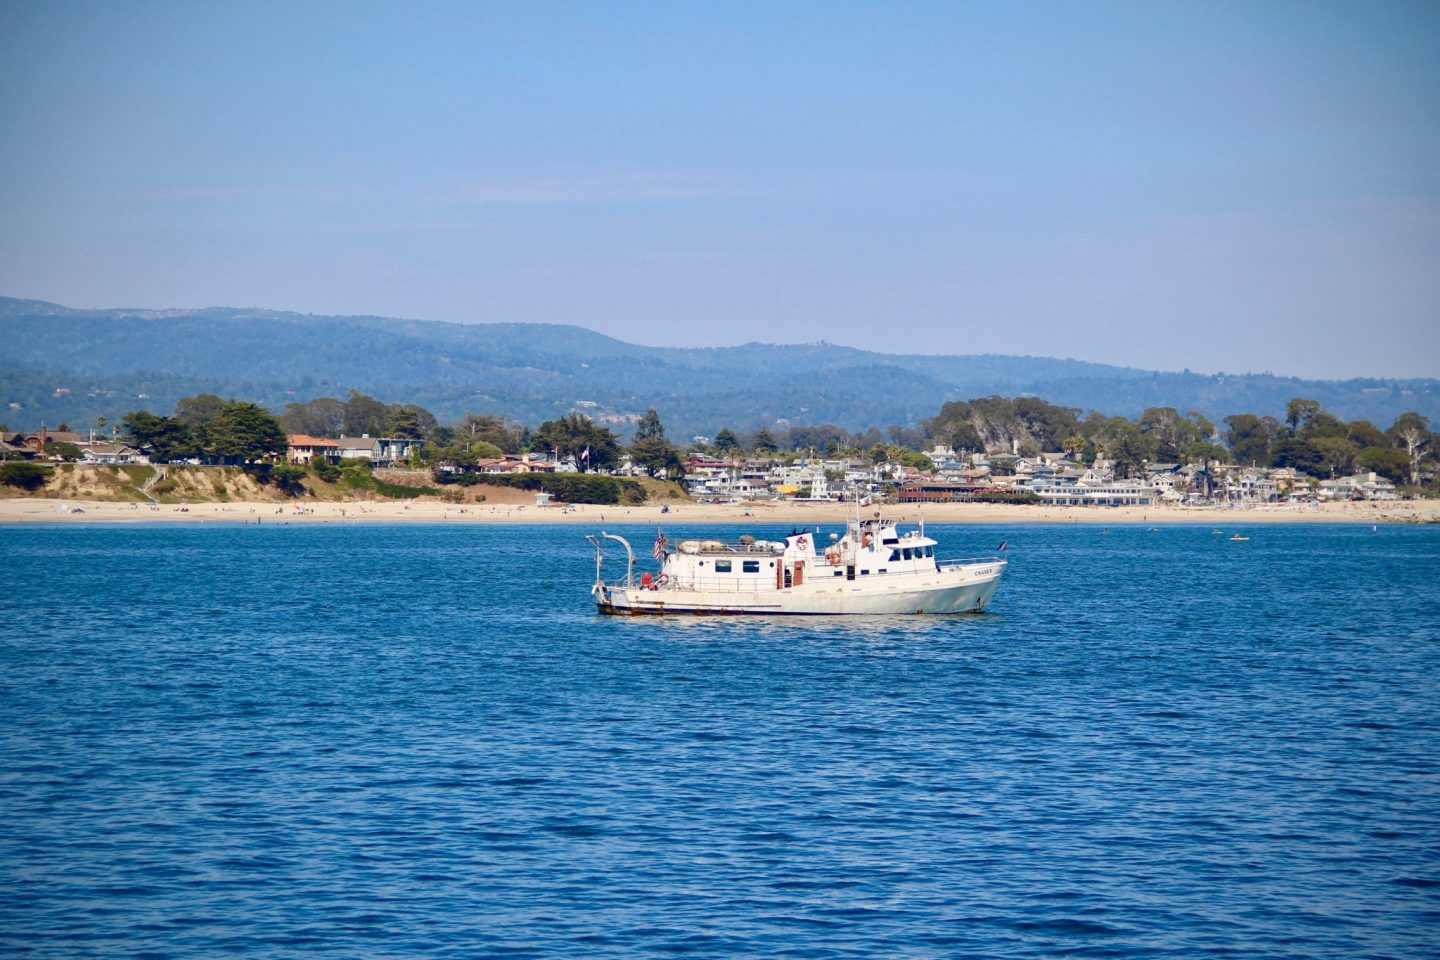 Santa Cruz Harbor, Santa Cruz, California - The Spectacular Adventurer